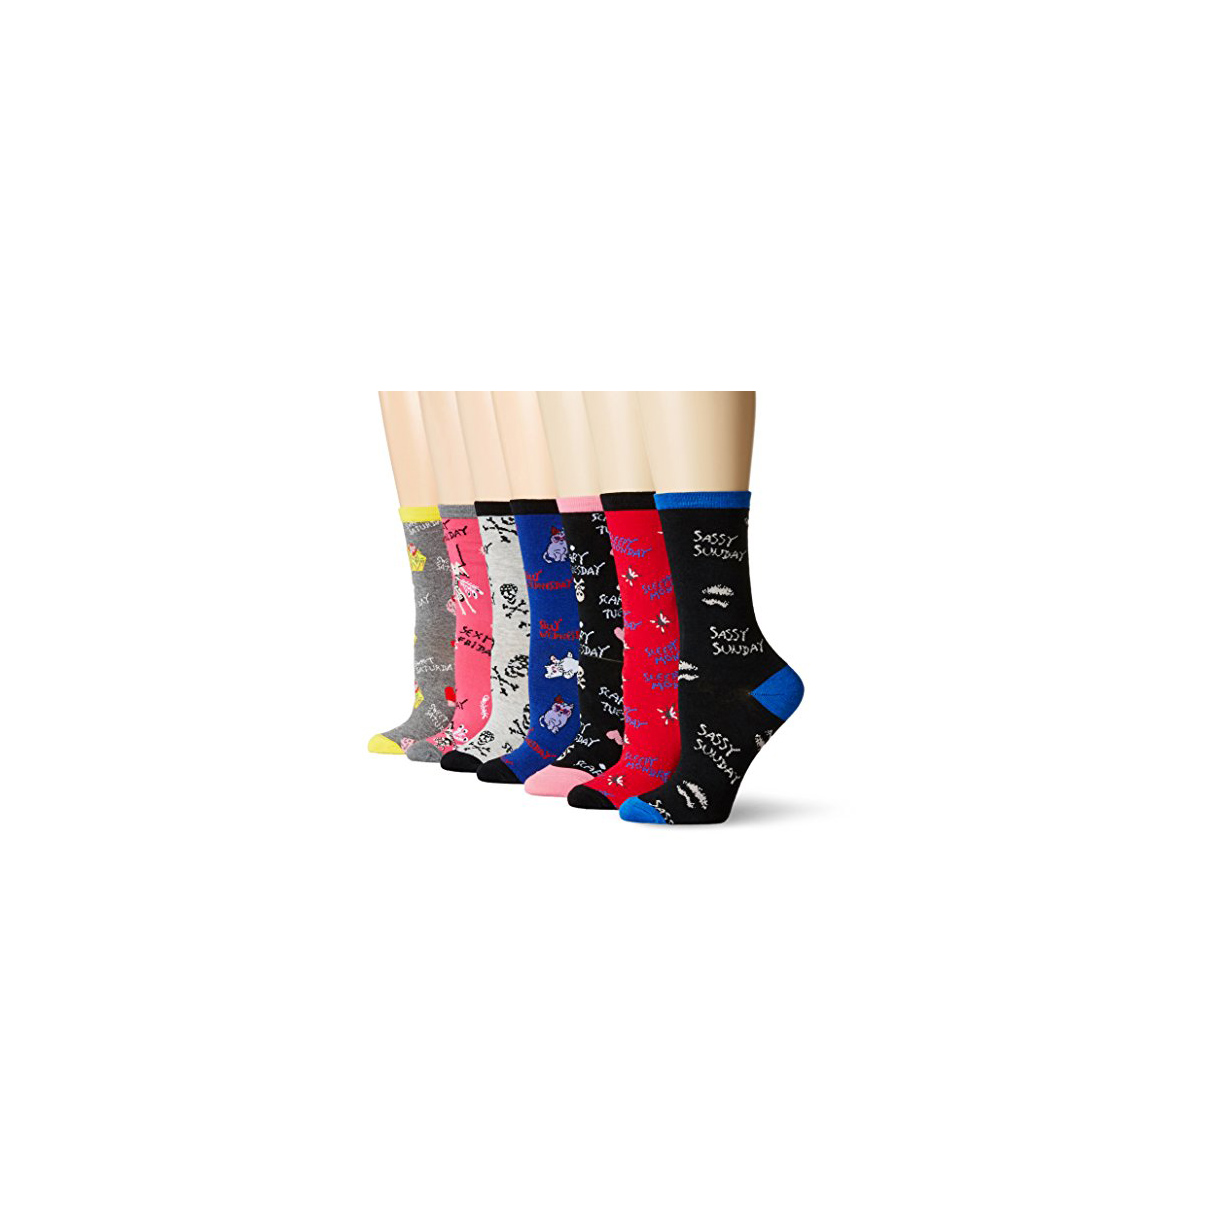 Betsey Johnson Women's Every Day Crew Socks